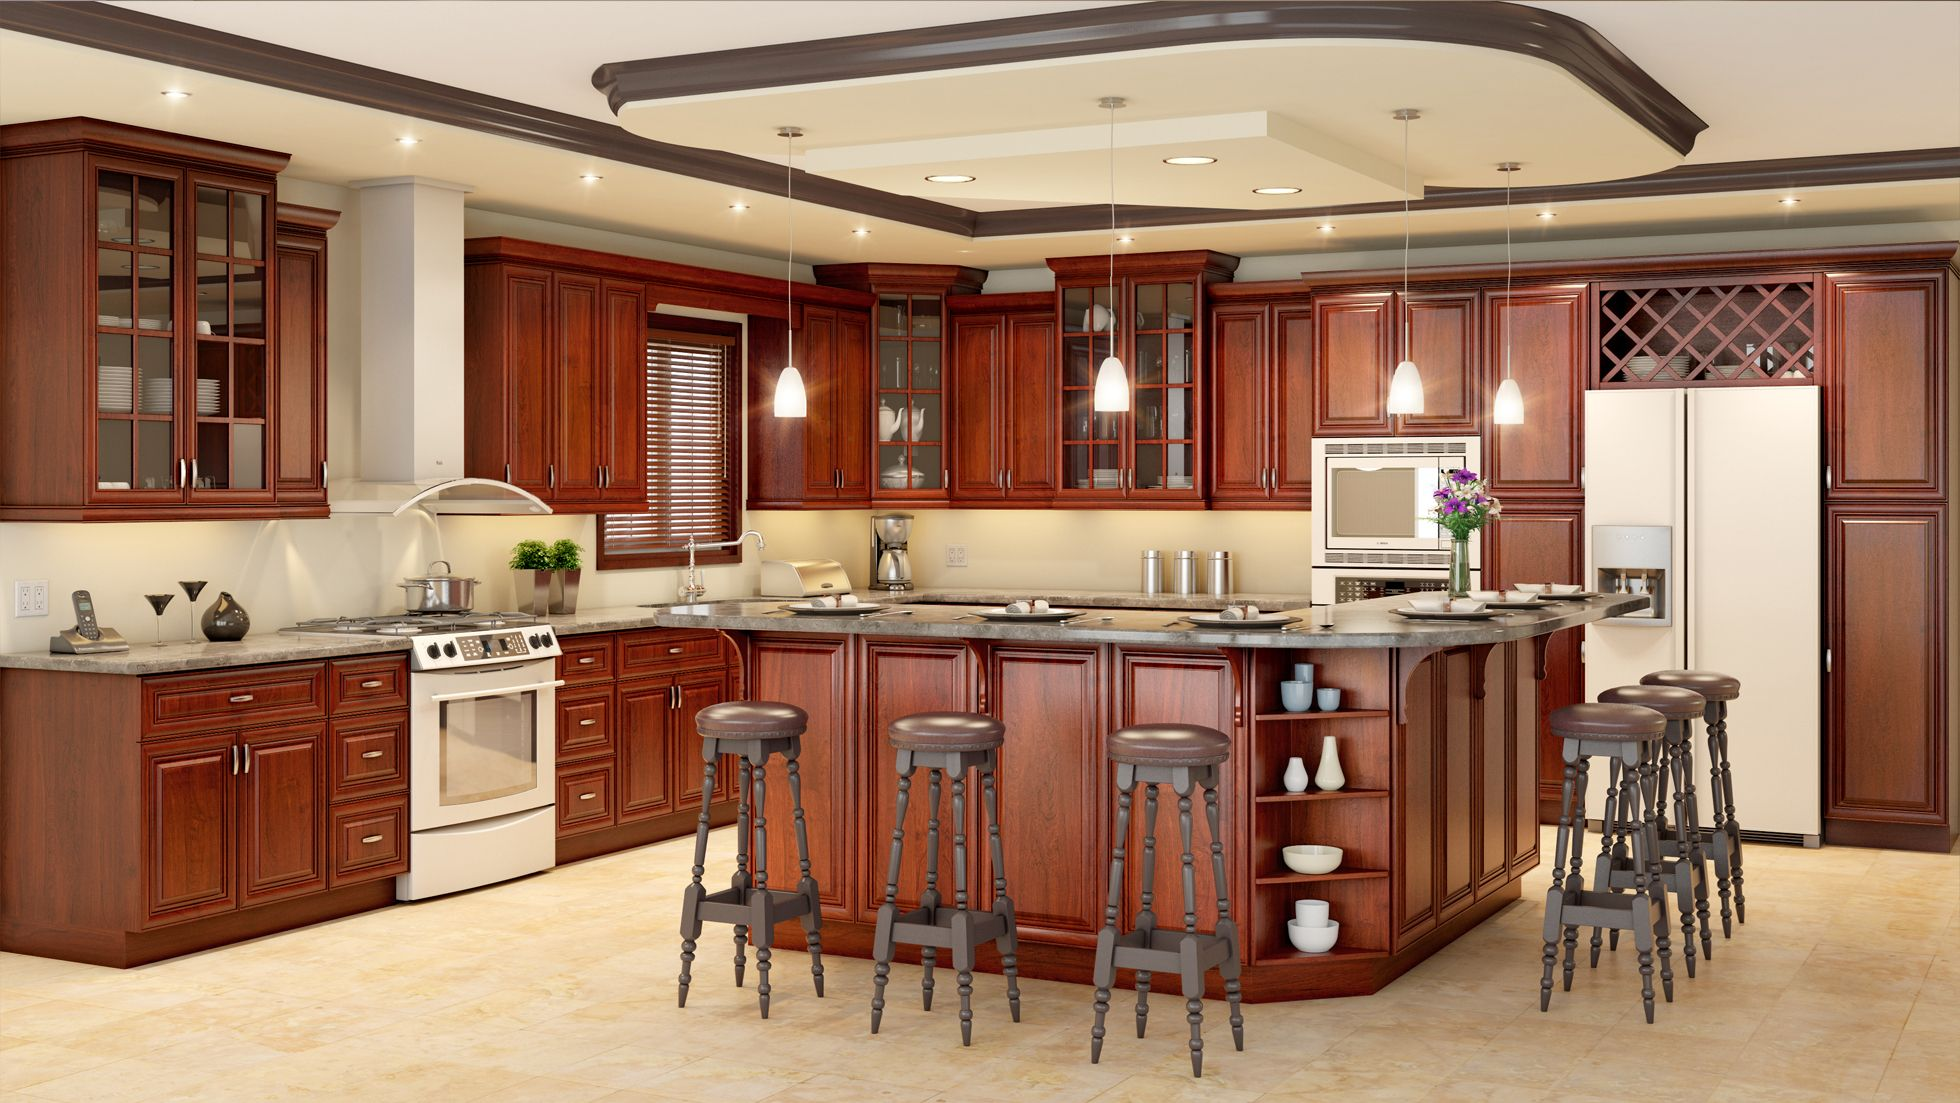 Camden When It Comes To Today S Traditional Look Camden Is A Popular Choice The Beauty Of Alde Kitchen Design Kitchen Cabinets Canada Online Kitchen Cabinets